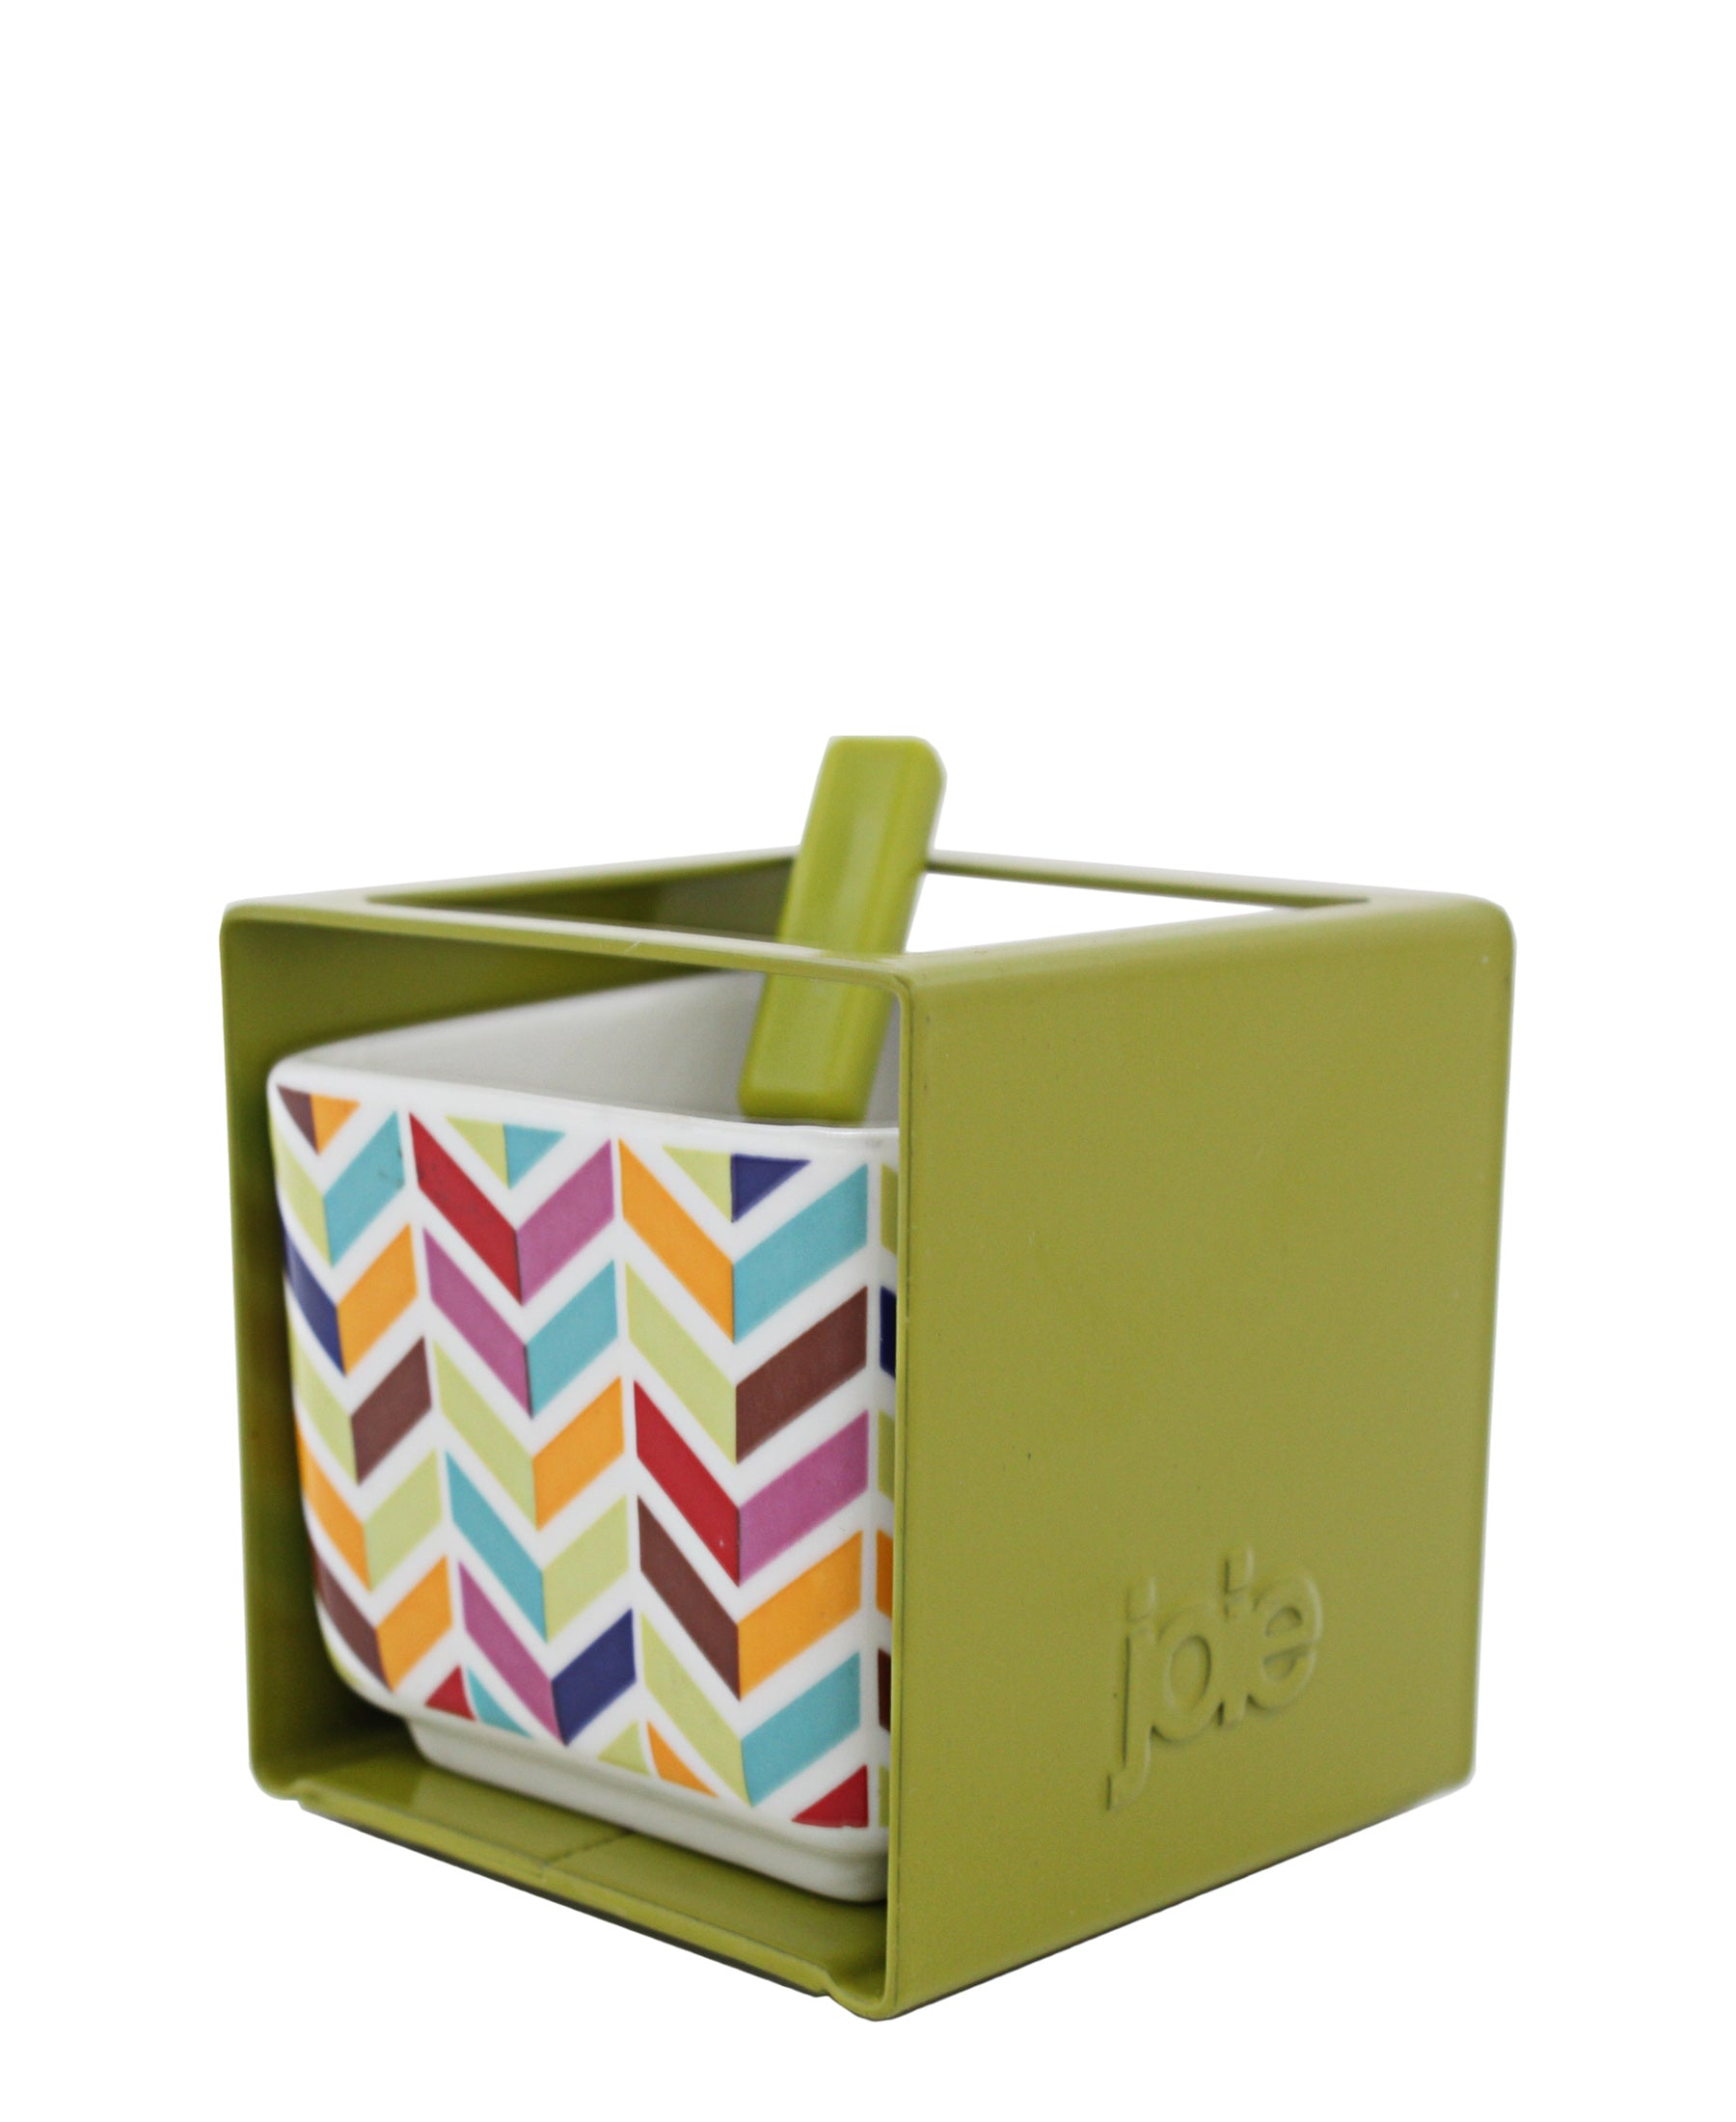 Joie Chocolate Fondue set- Green